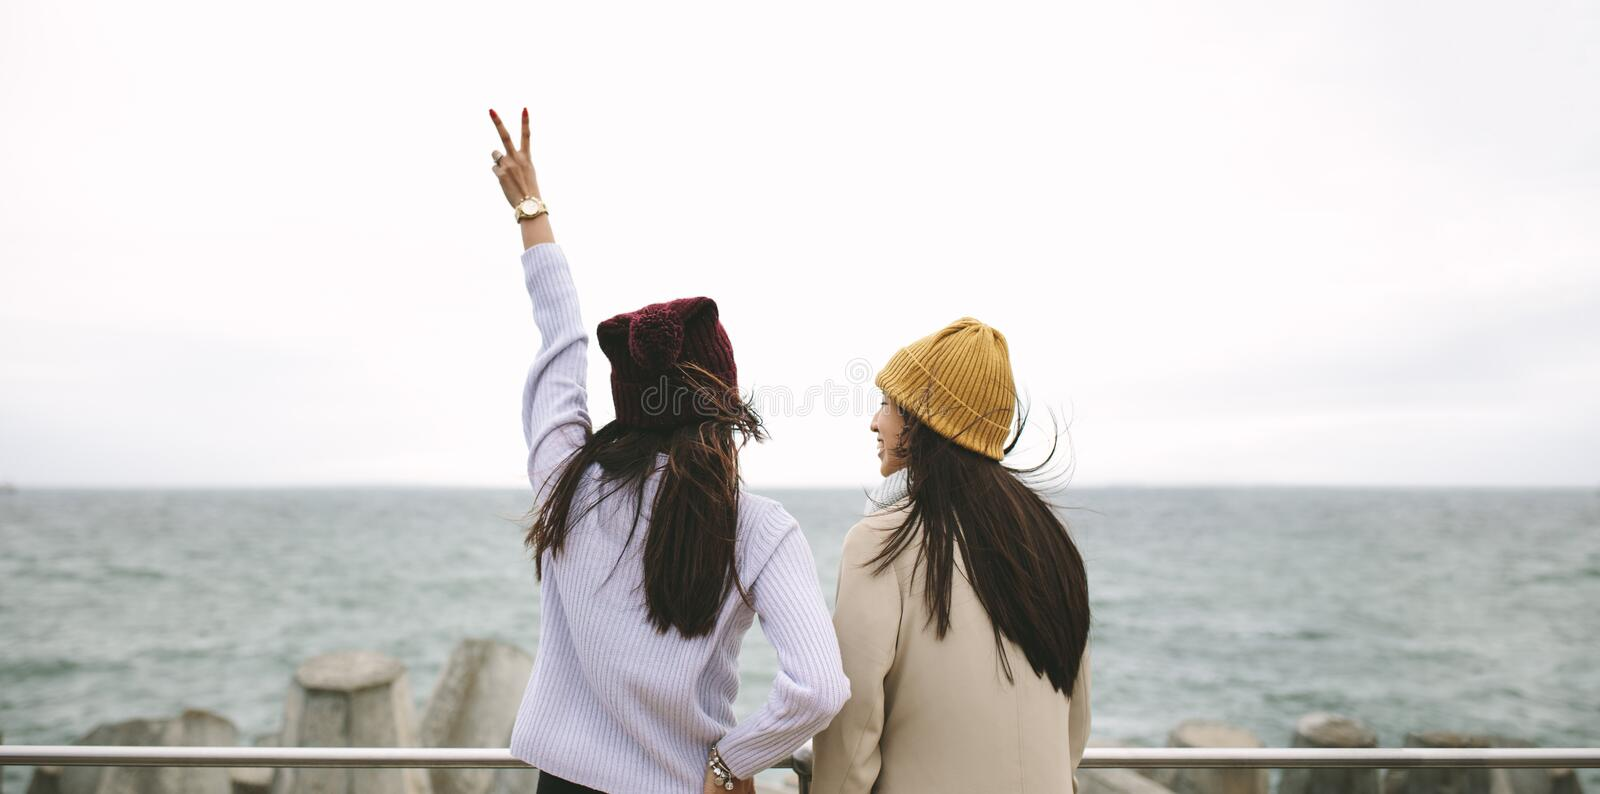 Rear view of two women standing together outdoors royalty free stock photos